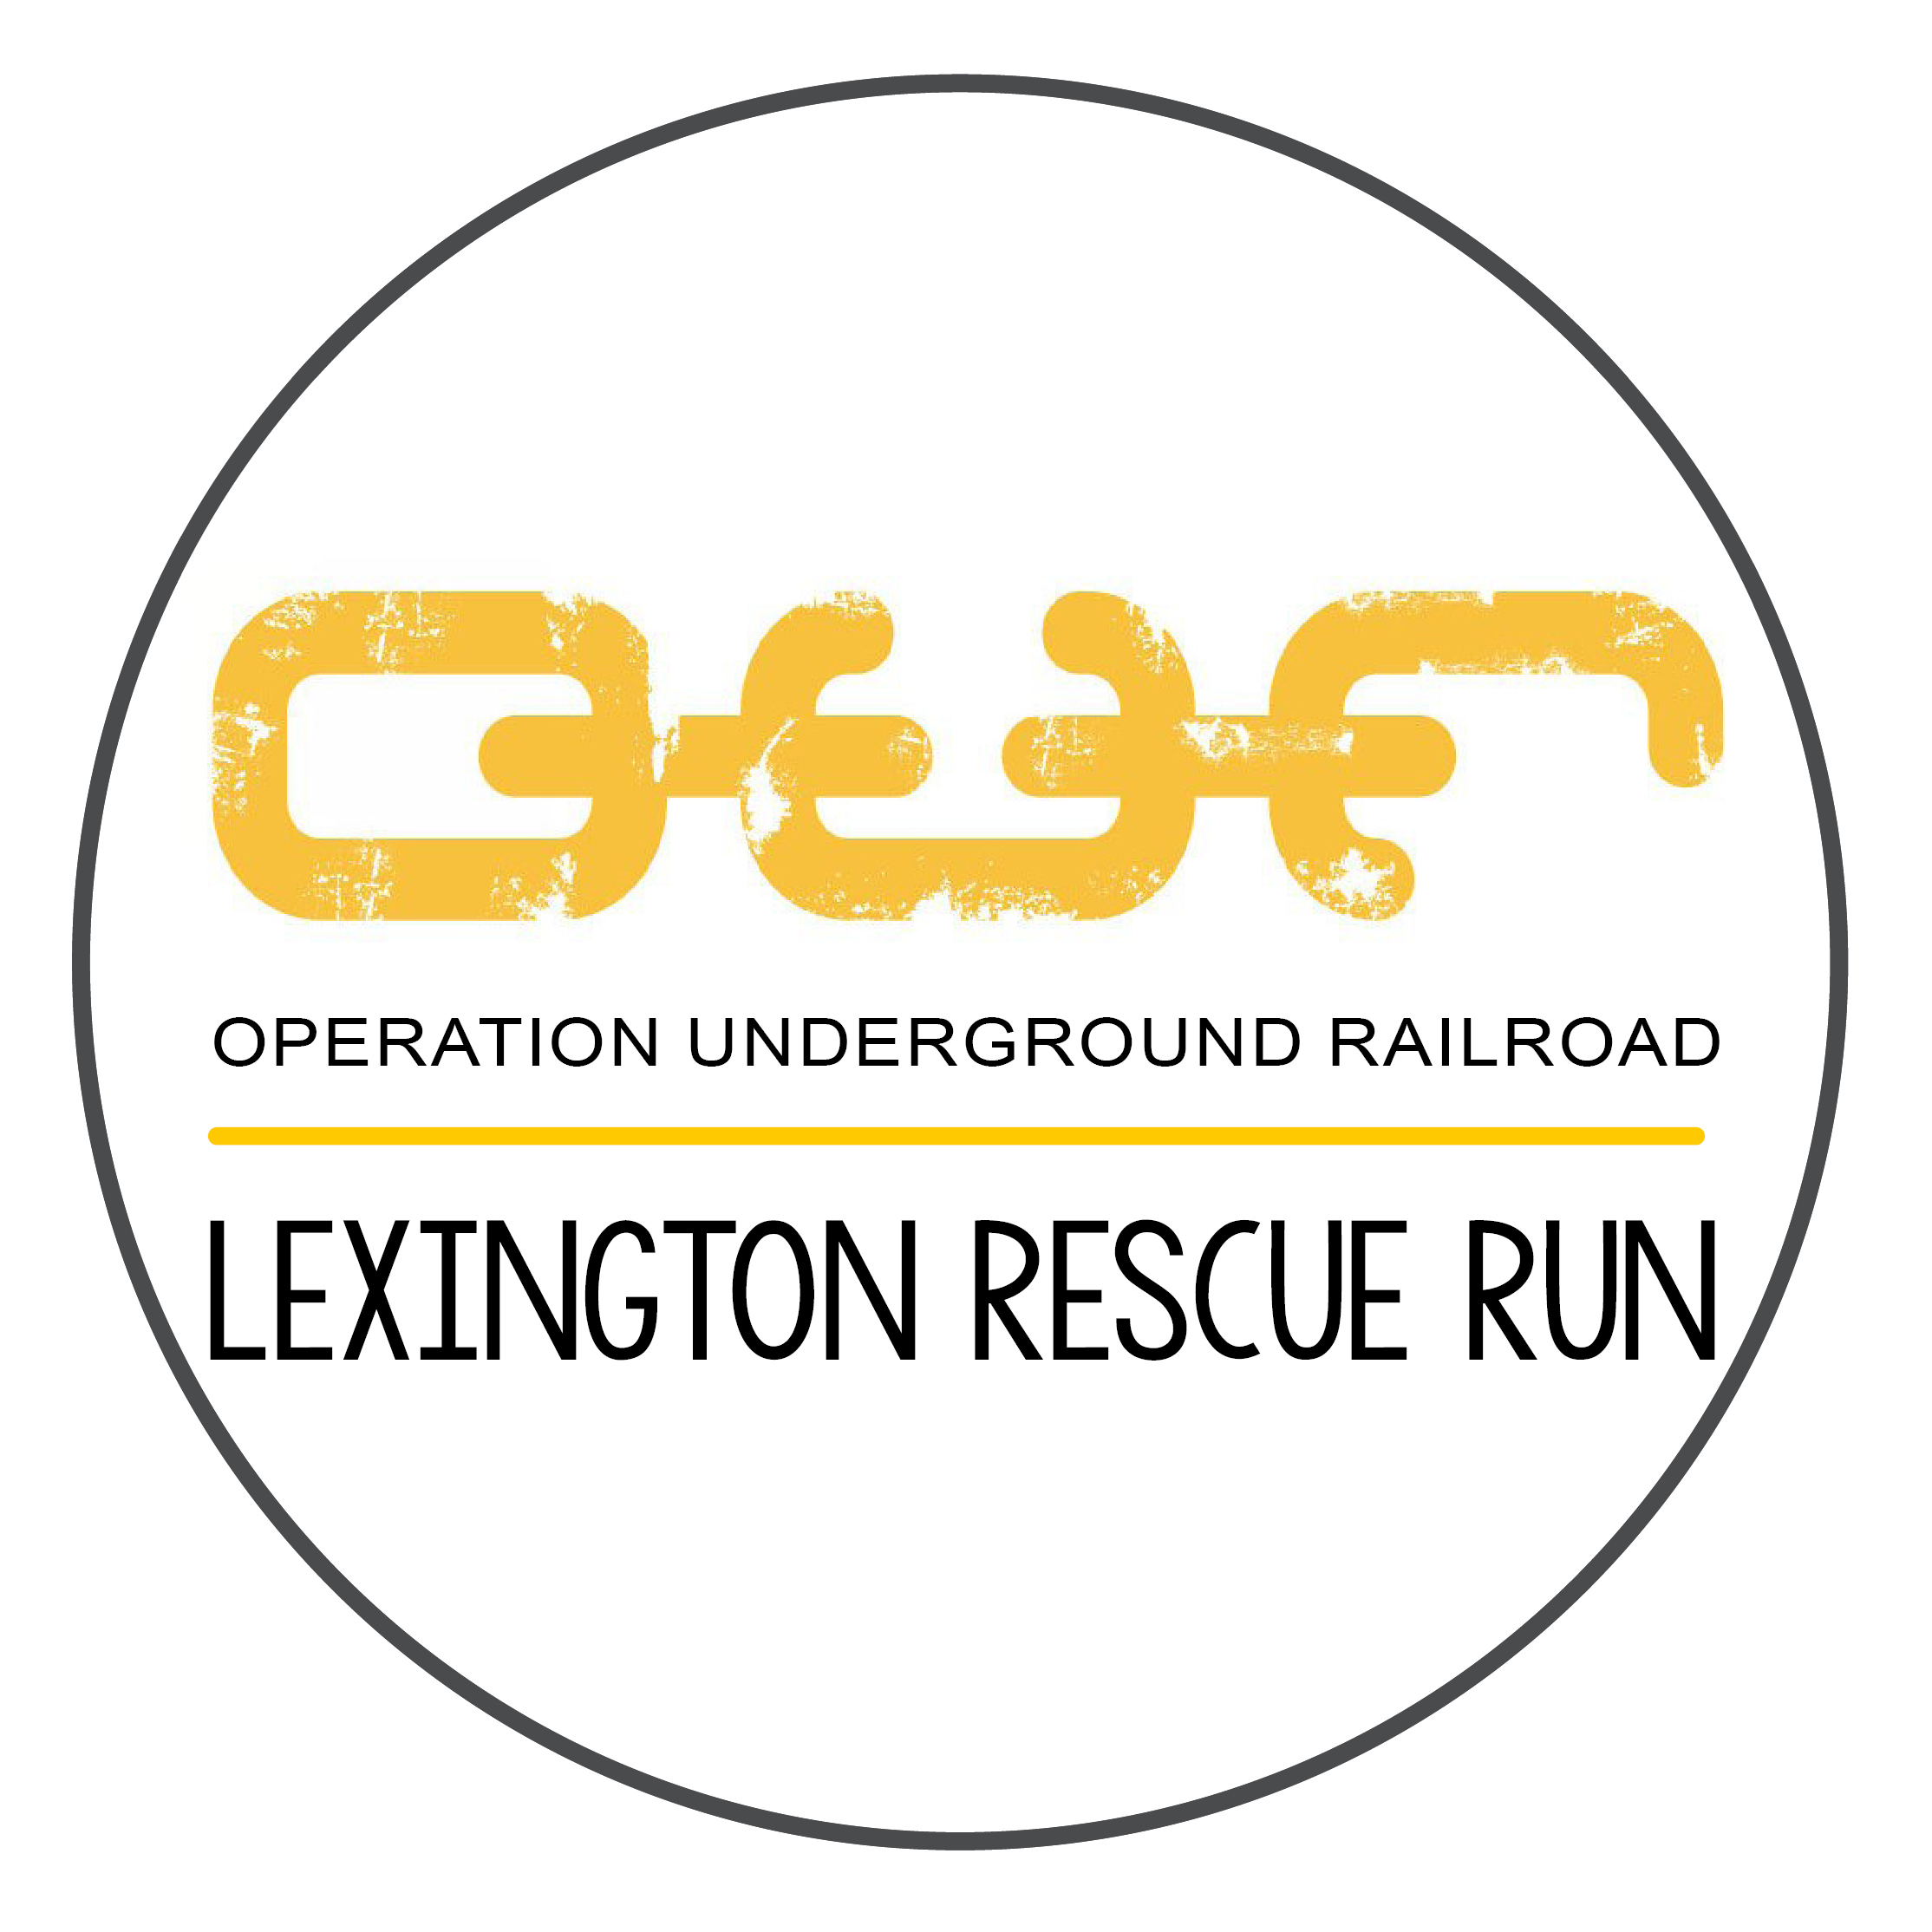 Lexington Rescue Run